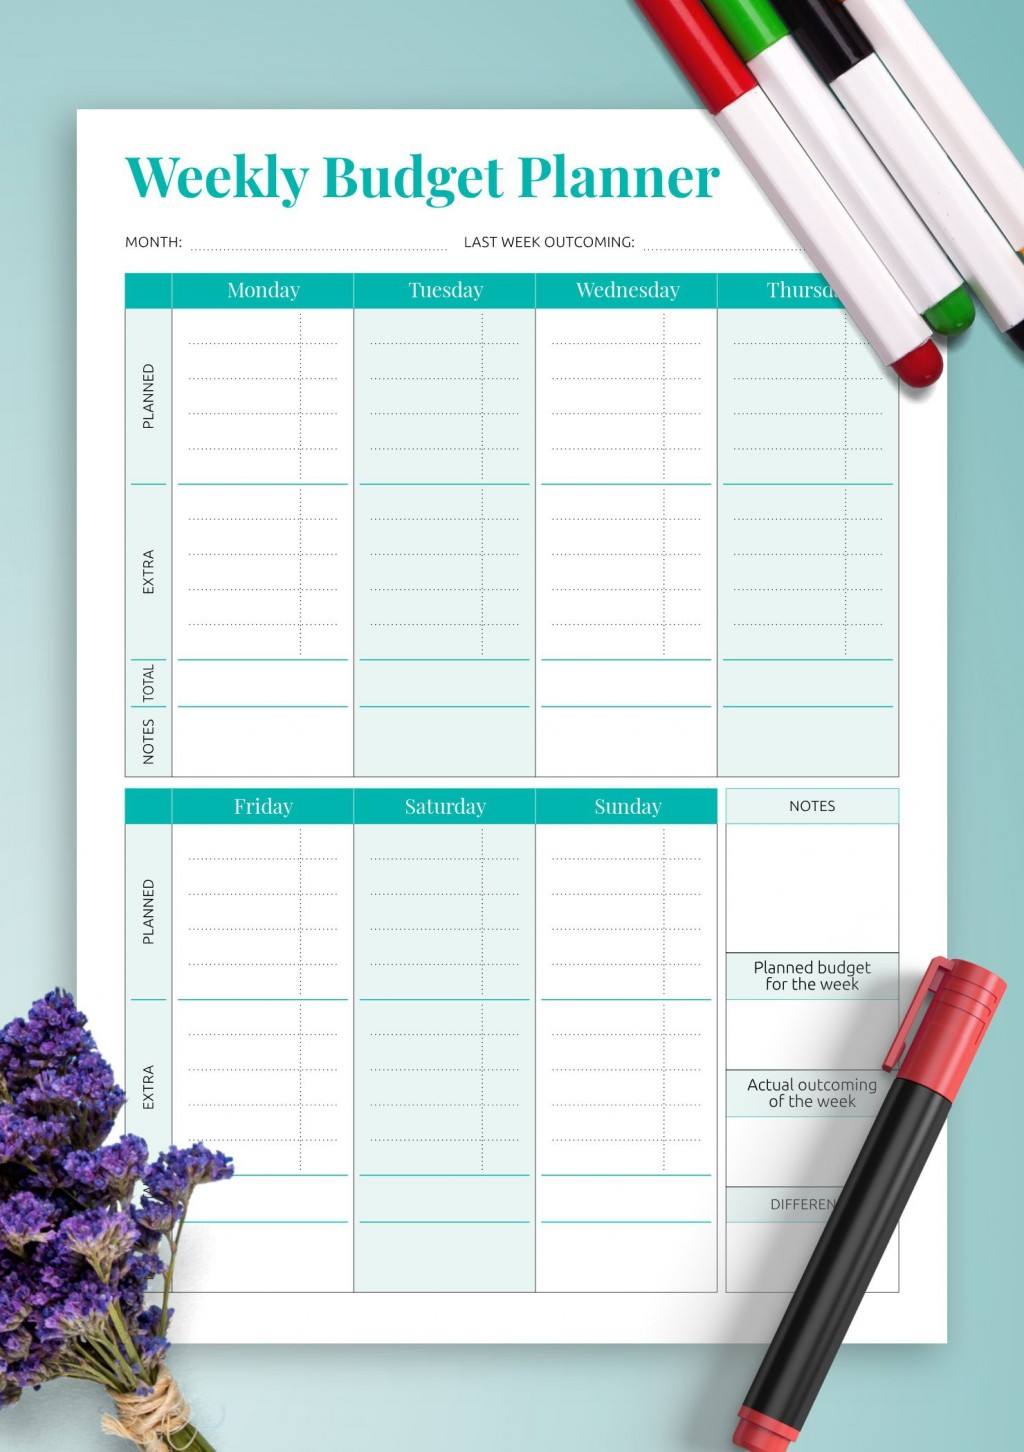 008 Surprising Simple Weekly Budget Template Picture  Planner Personal PrintableLarge